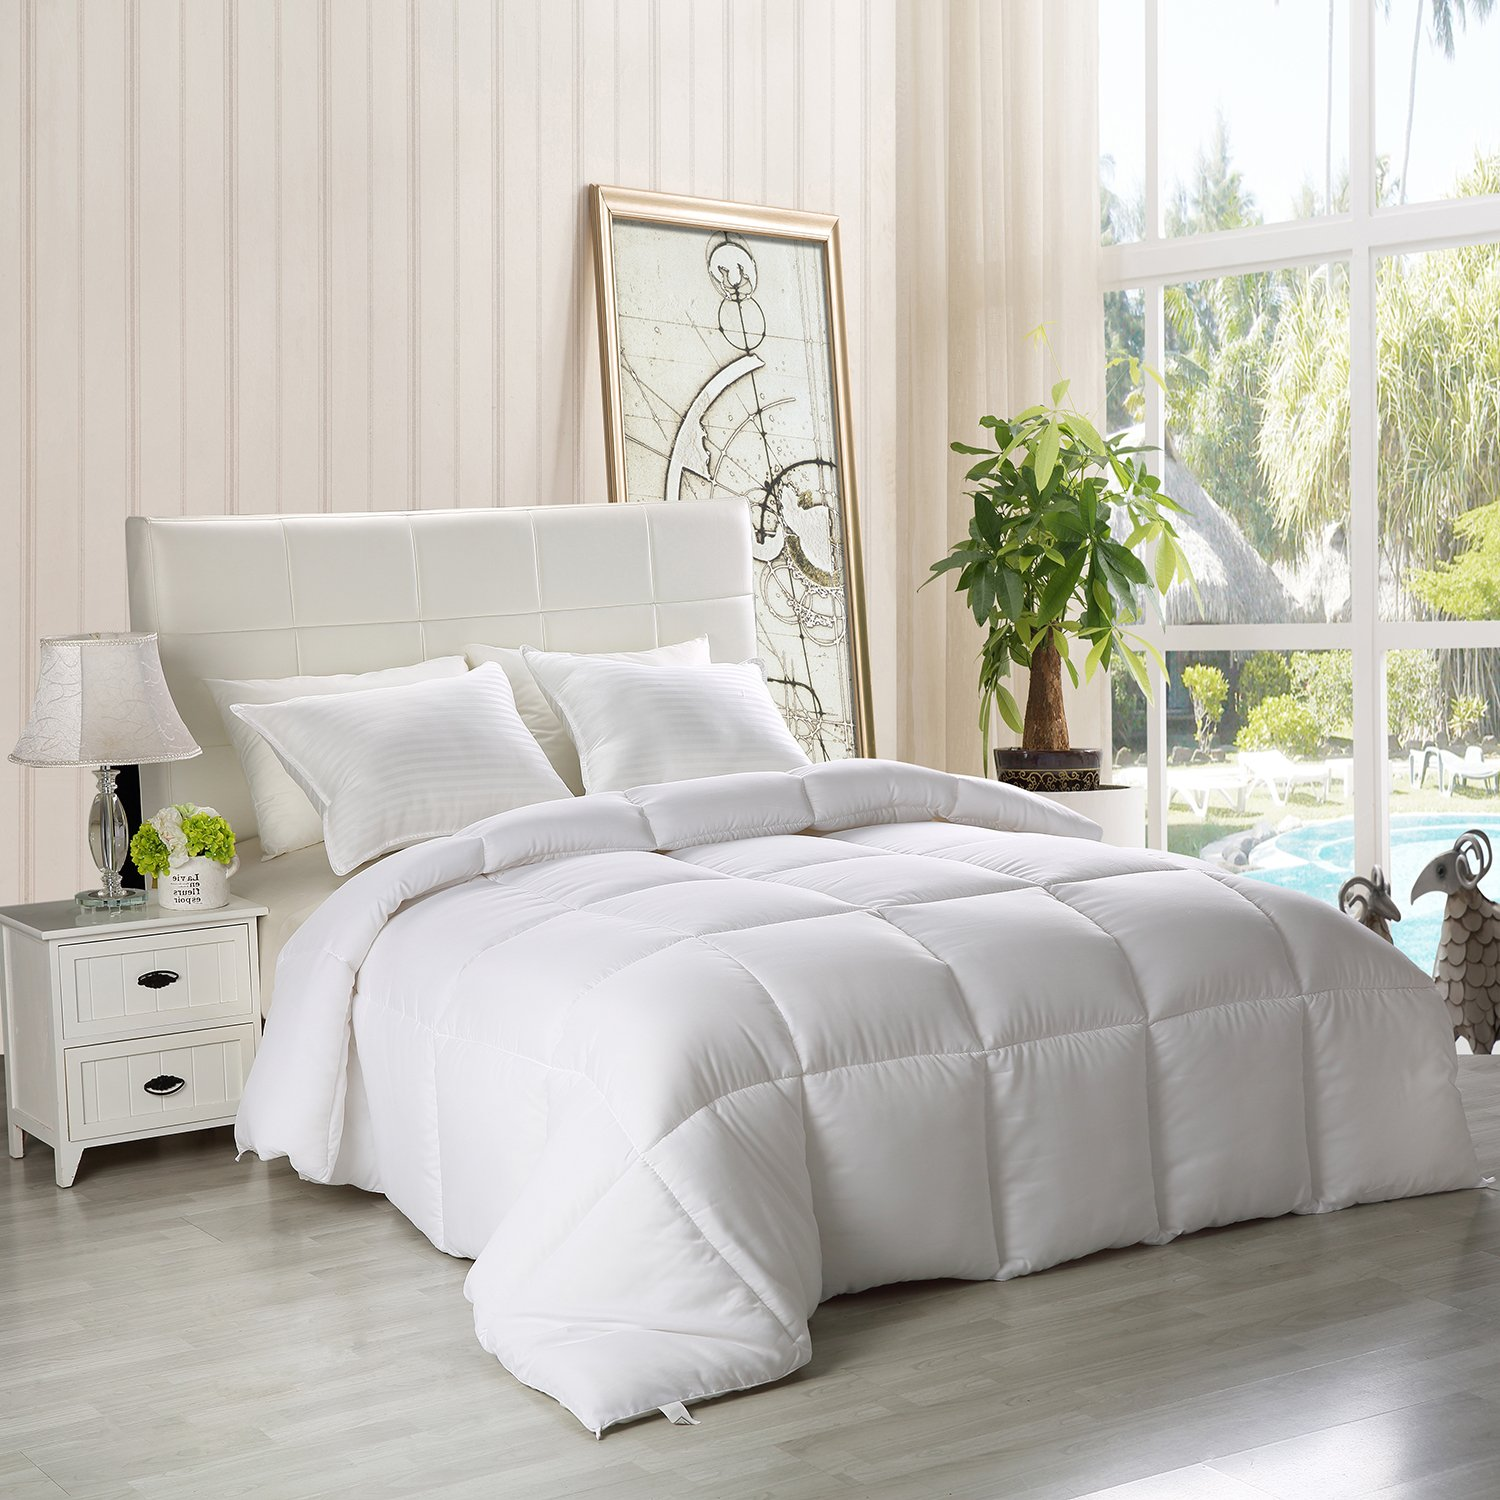 Down Alternative Comforter (White, Queen) - All Season Comforter